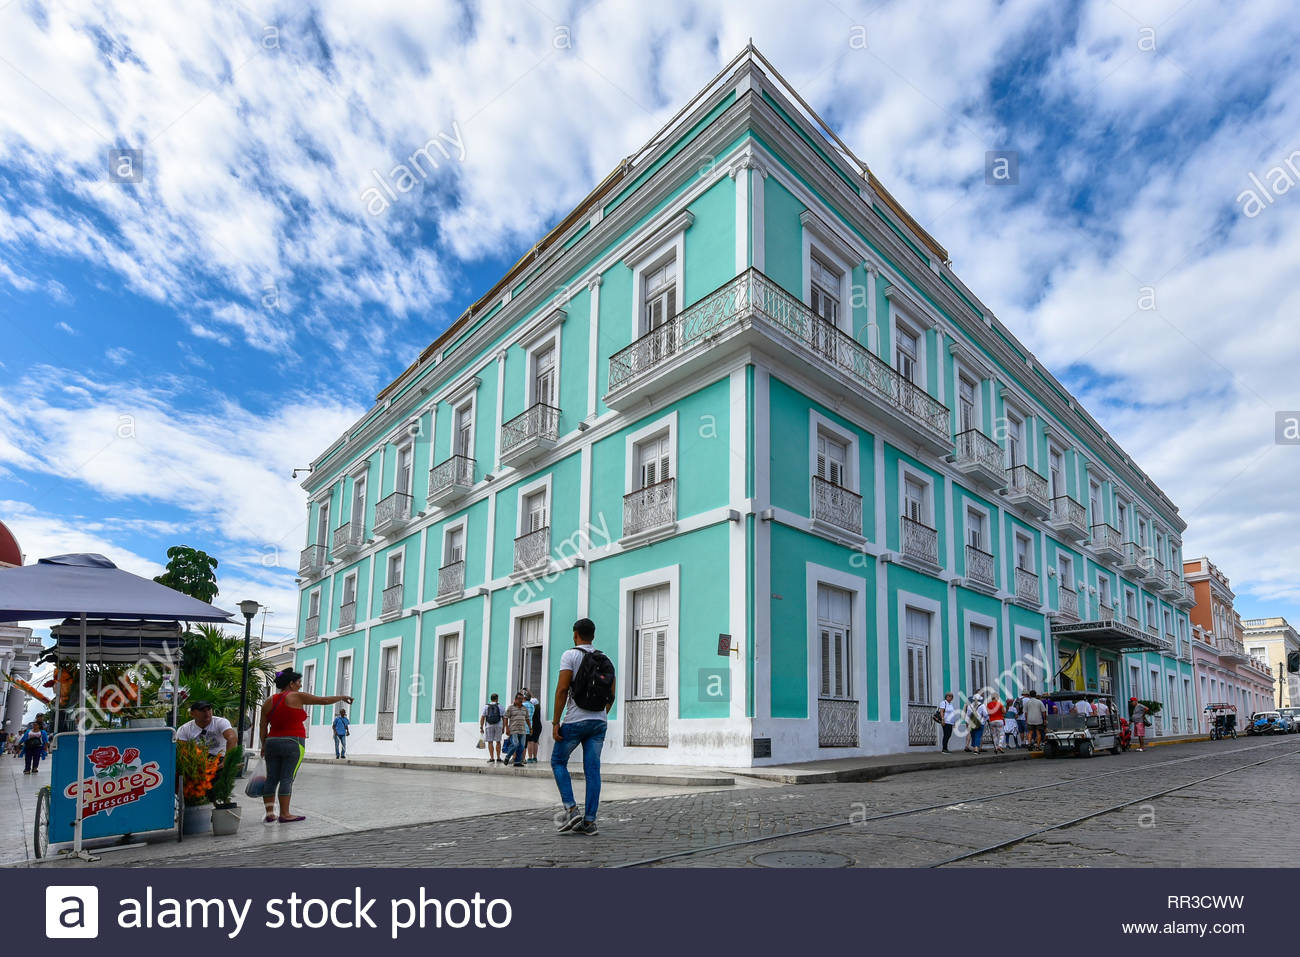 Hotel 'La Union' operated by Melia Hotels. The colonial building is painted in pastel green contrasting with the blue sky. Wide angle view of the land - Stock Image